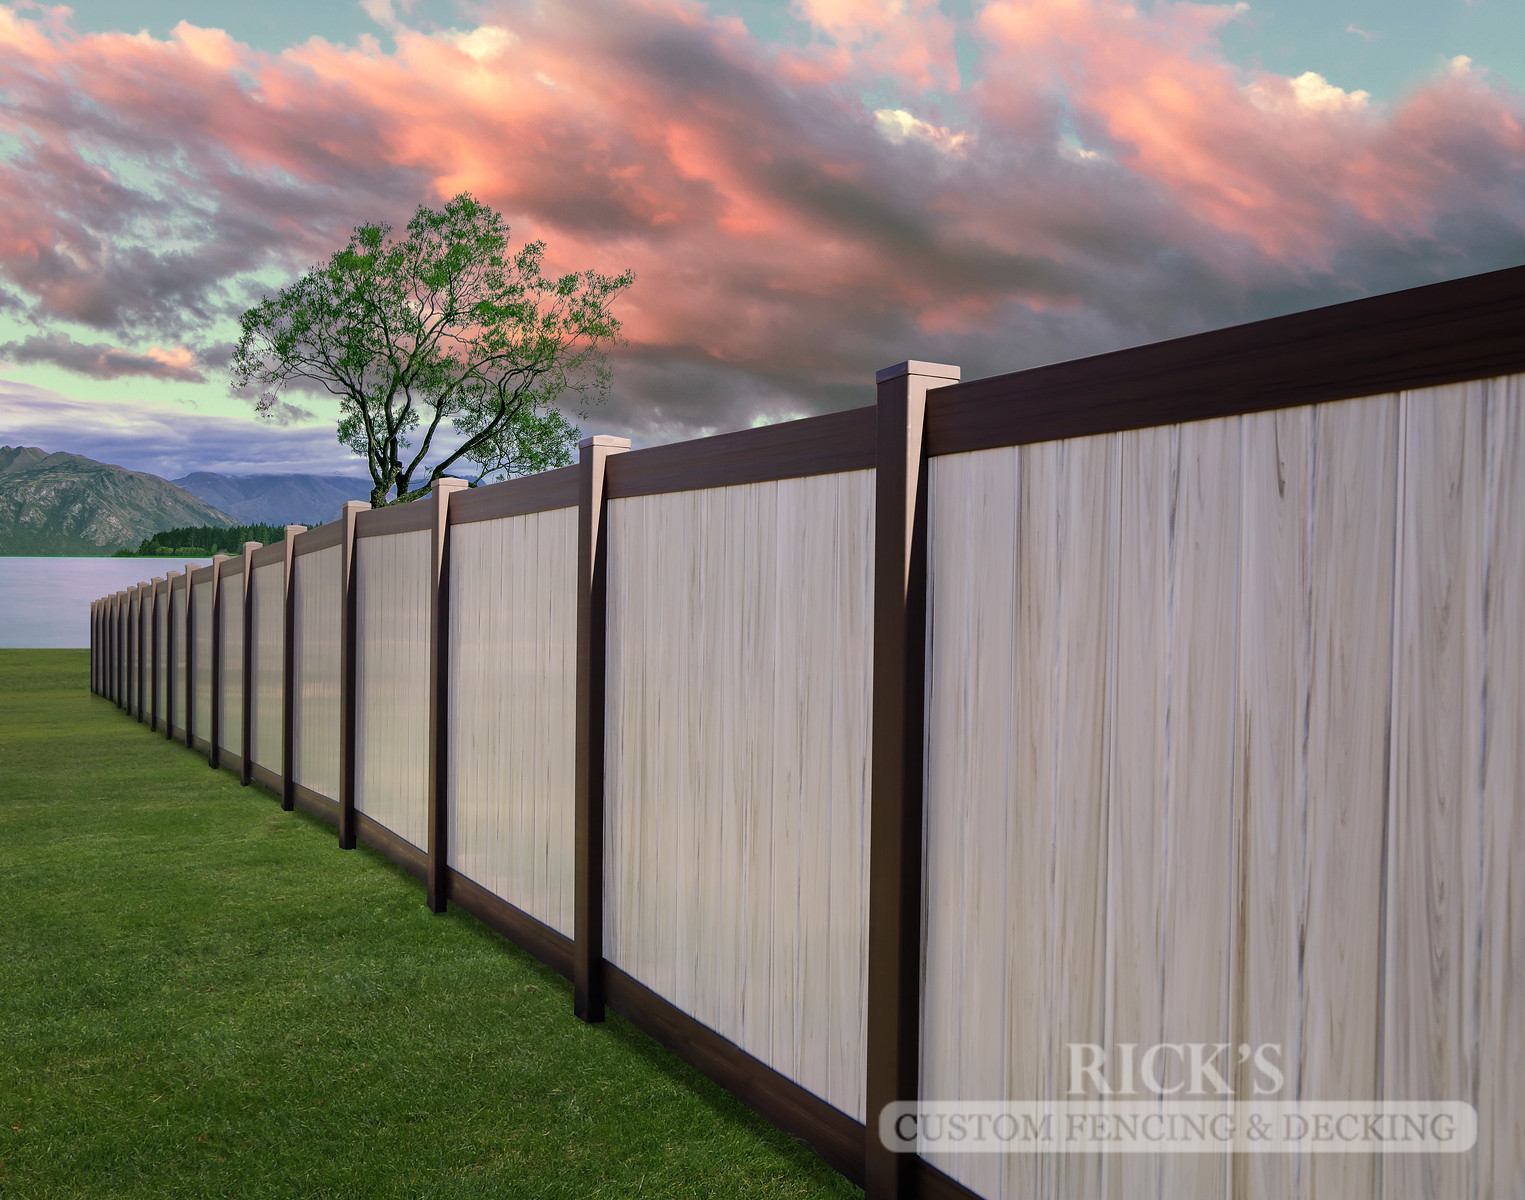 3038 - Vinyl Privacy Fencing